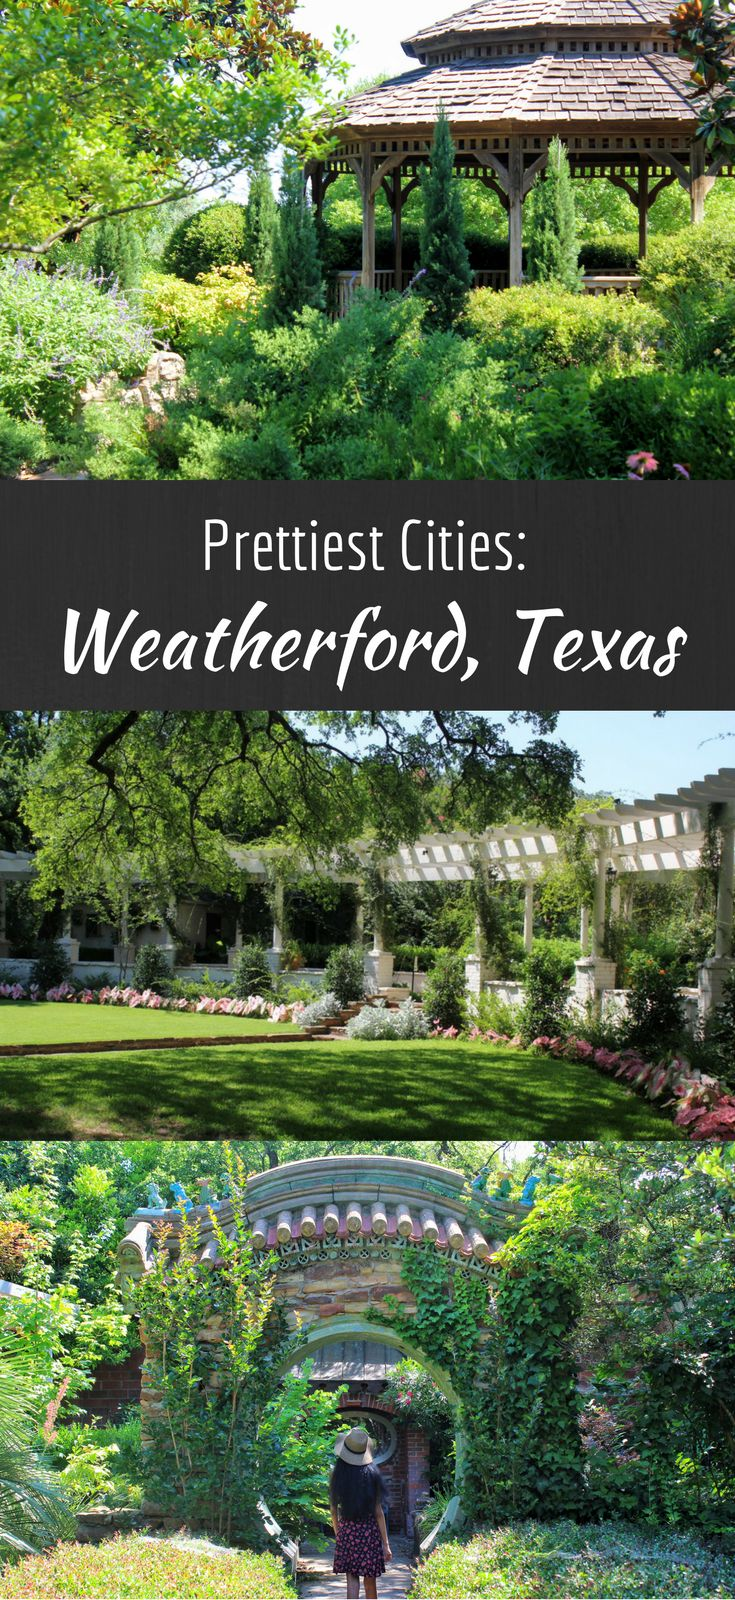 Looking for a complete guide to Weatherford, Texas? The P2E team has you covered on everything from what to see to where to stay.